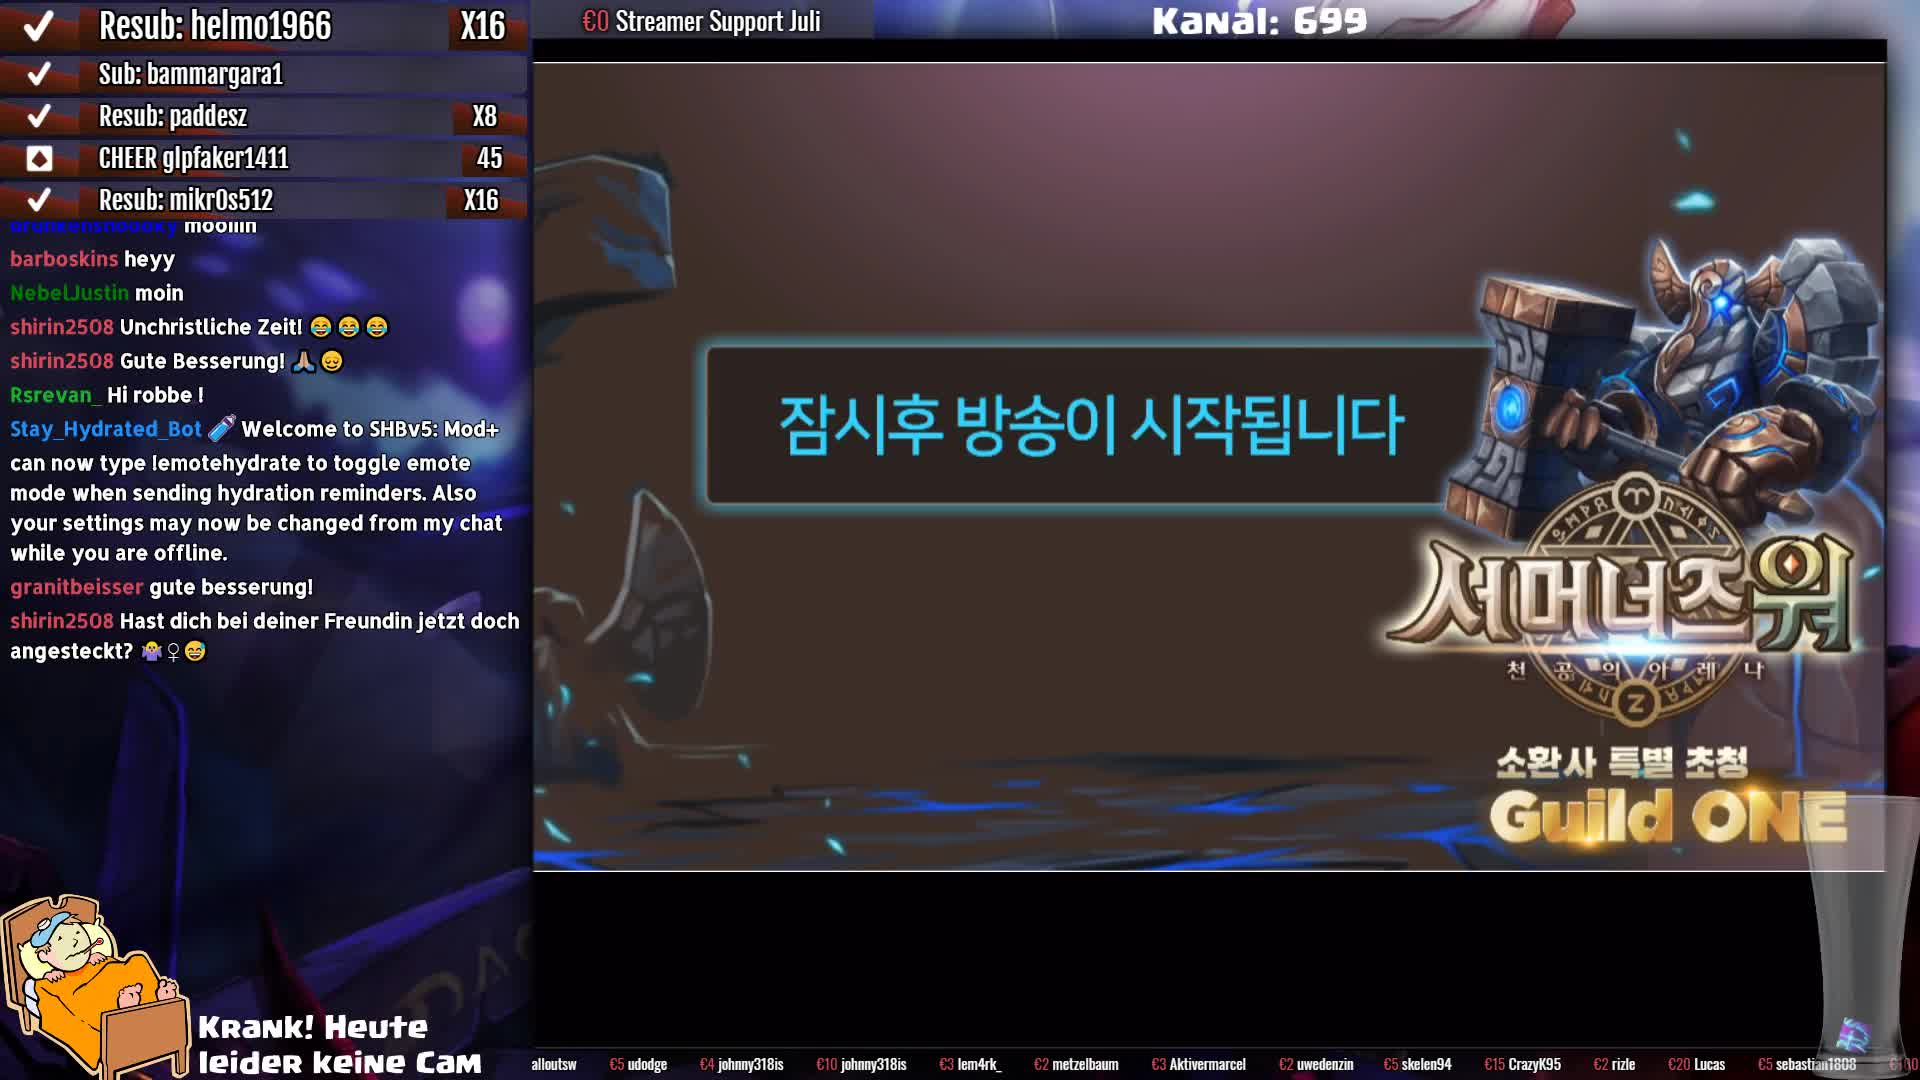 Robby33 - Update! FRR + Rune crafting + Pung Arena - Twitch